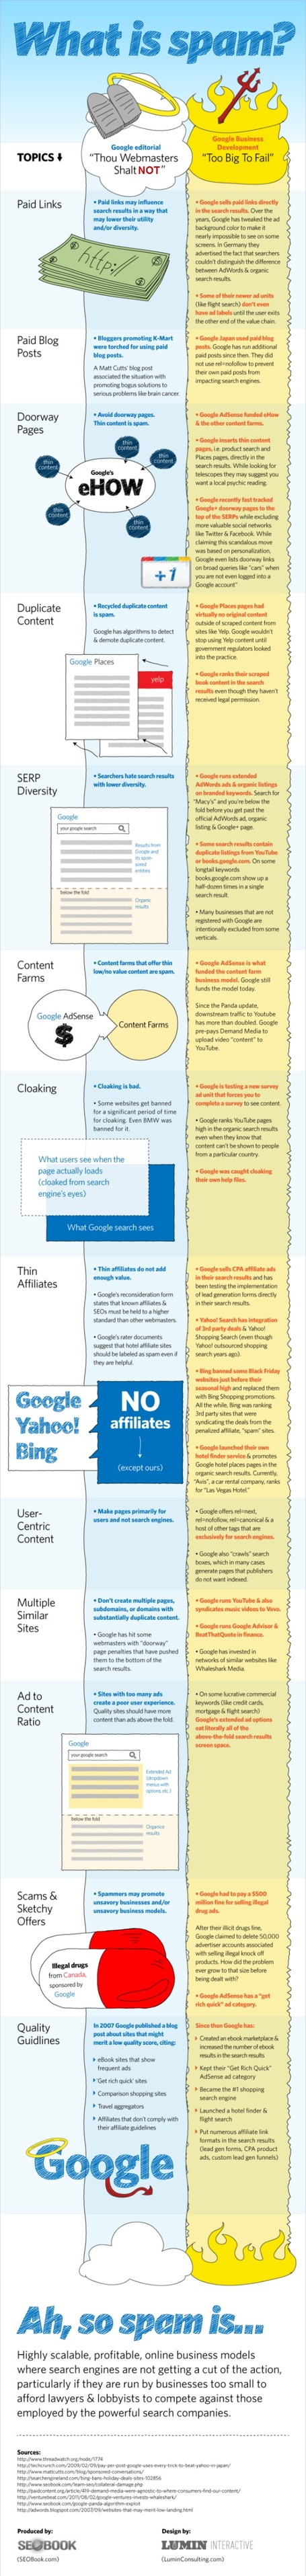 What is SEO Spam? A Look At Google's Editorial Guidelines | Real SEO | Scoop.it